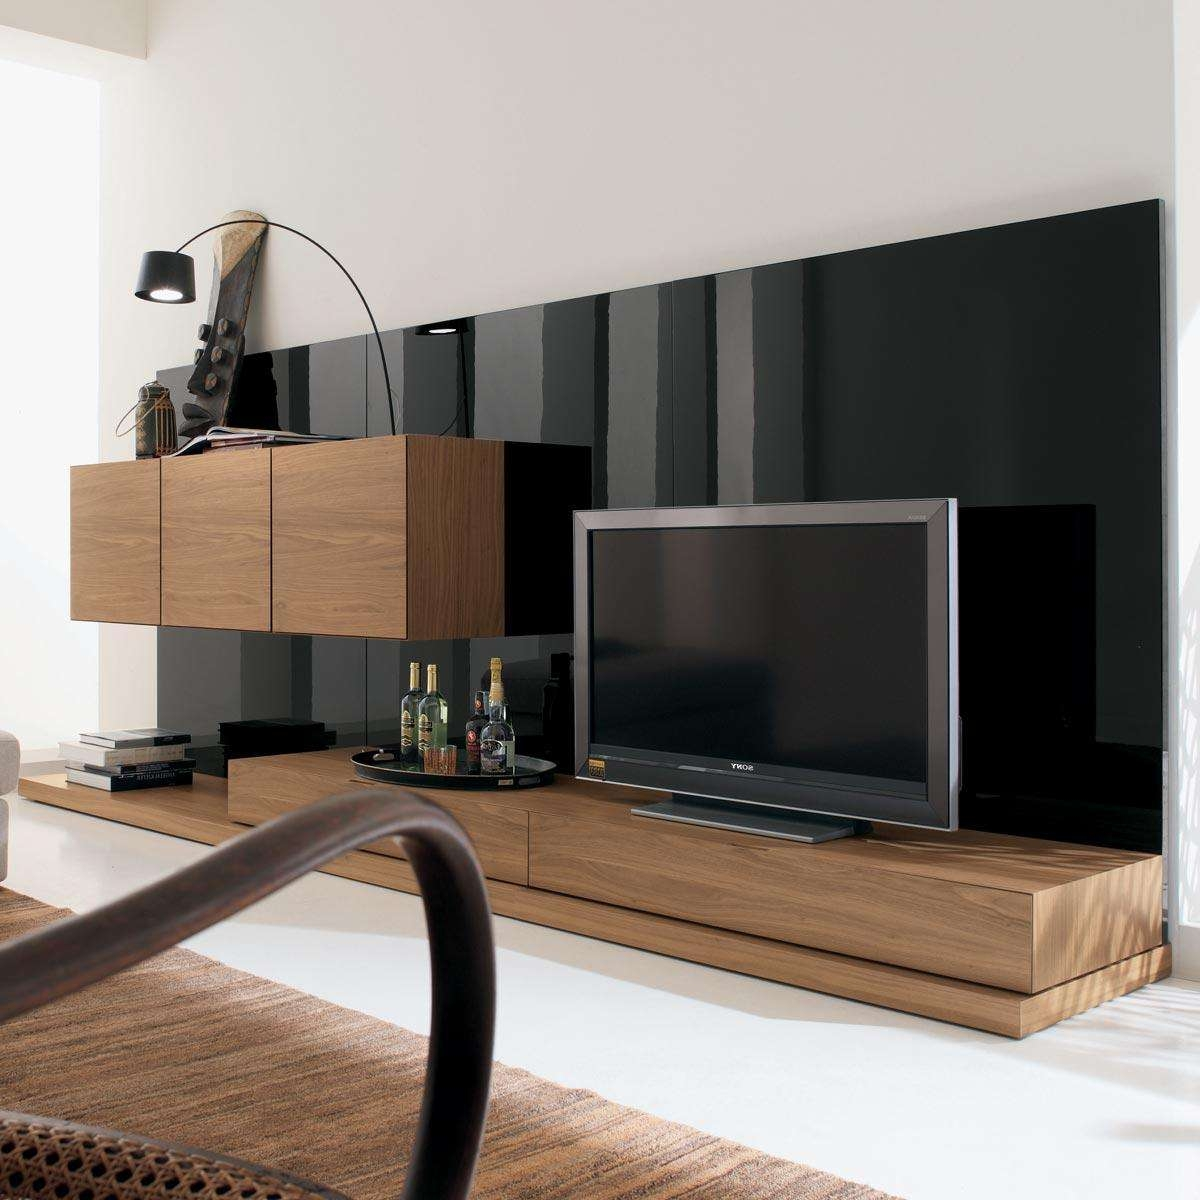 Modern Nature Wood Big Screen Tv Stand Wall Mounted Living Room Inside Long Tv Stands Furniture (View 3 of 15)